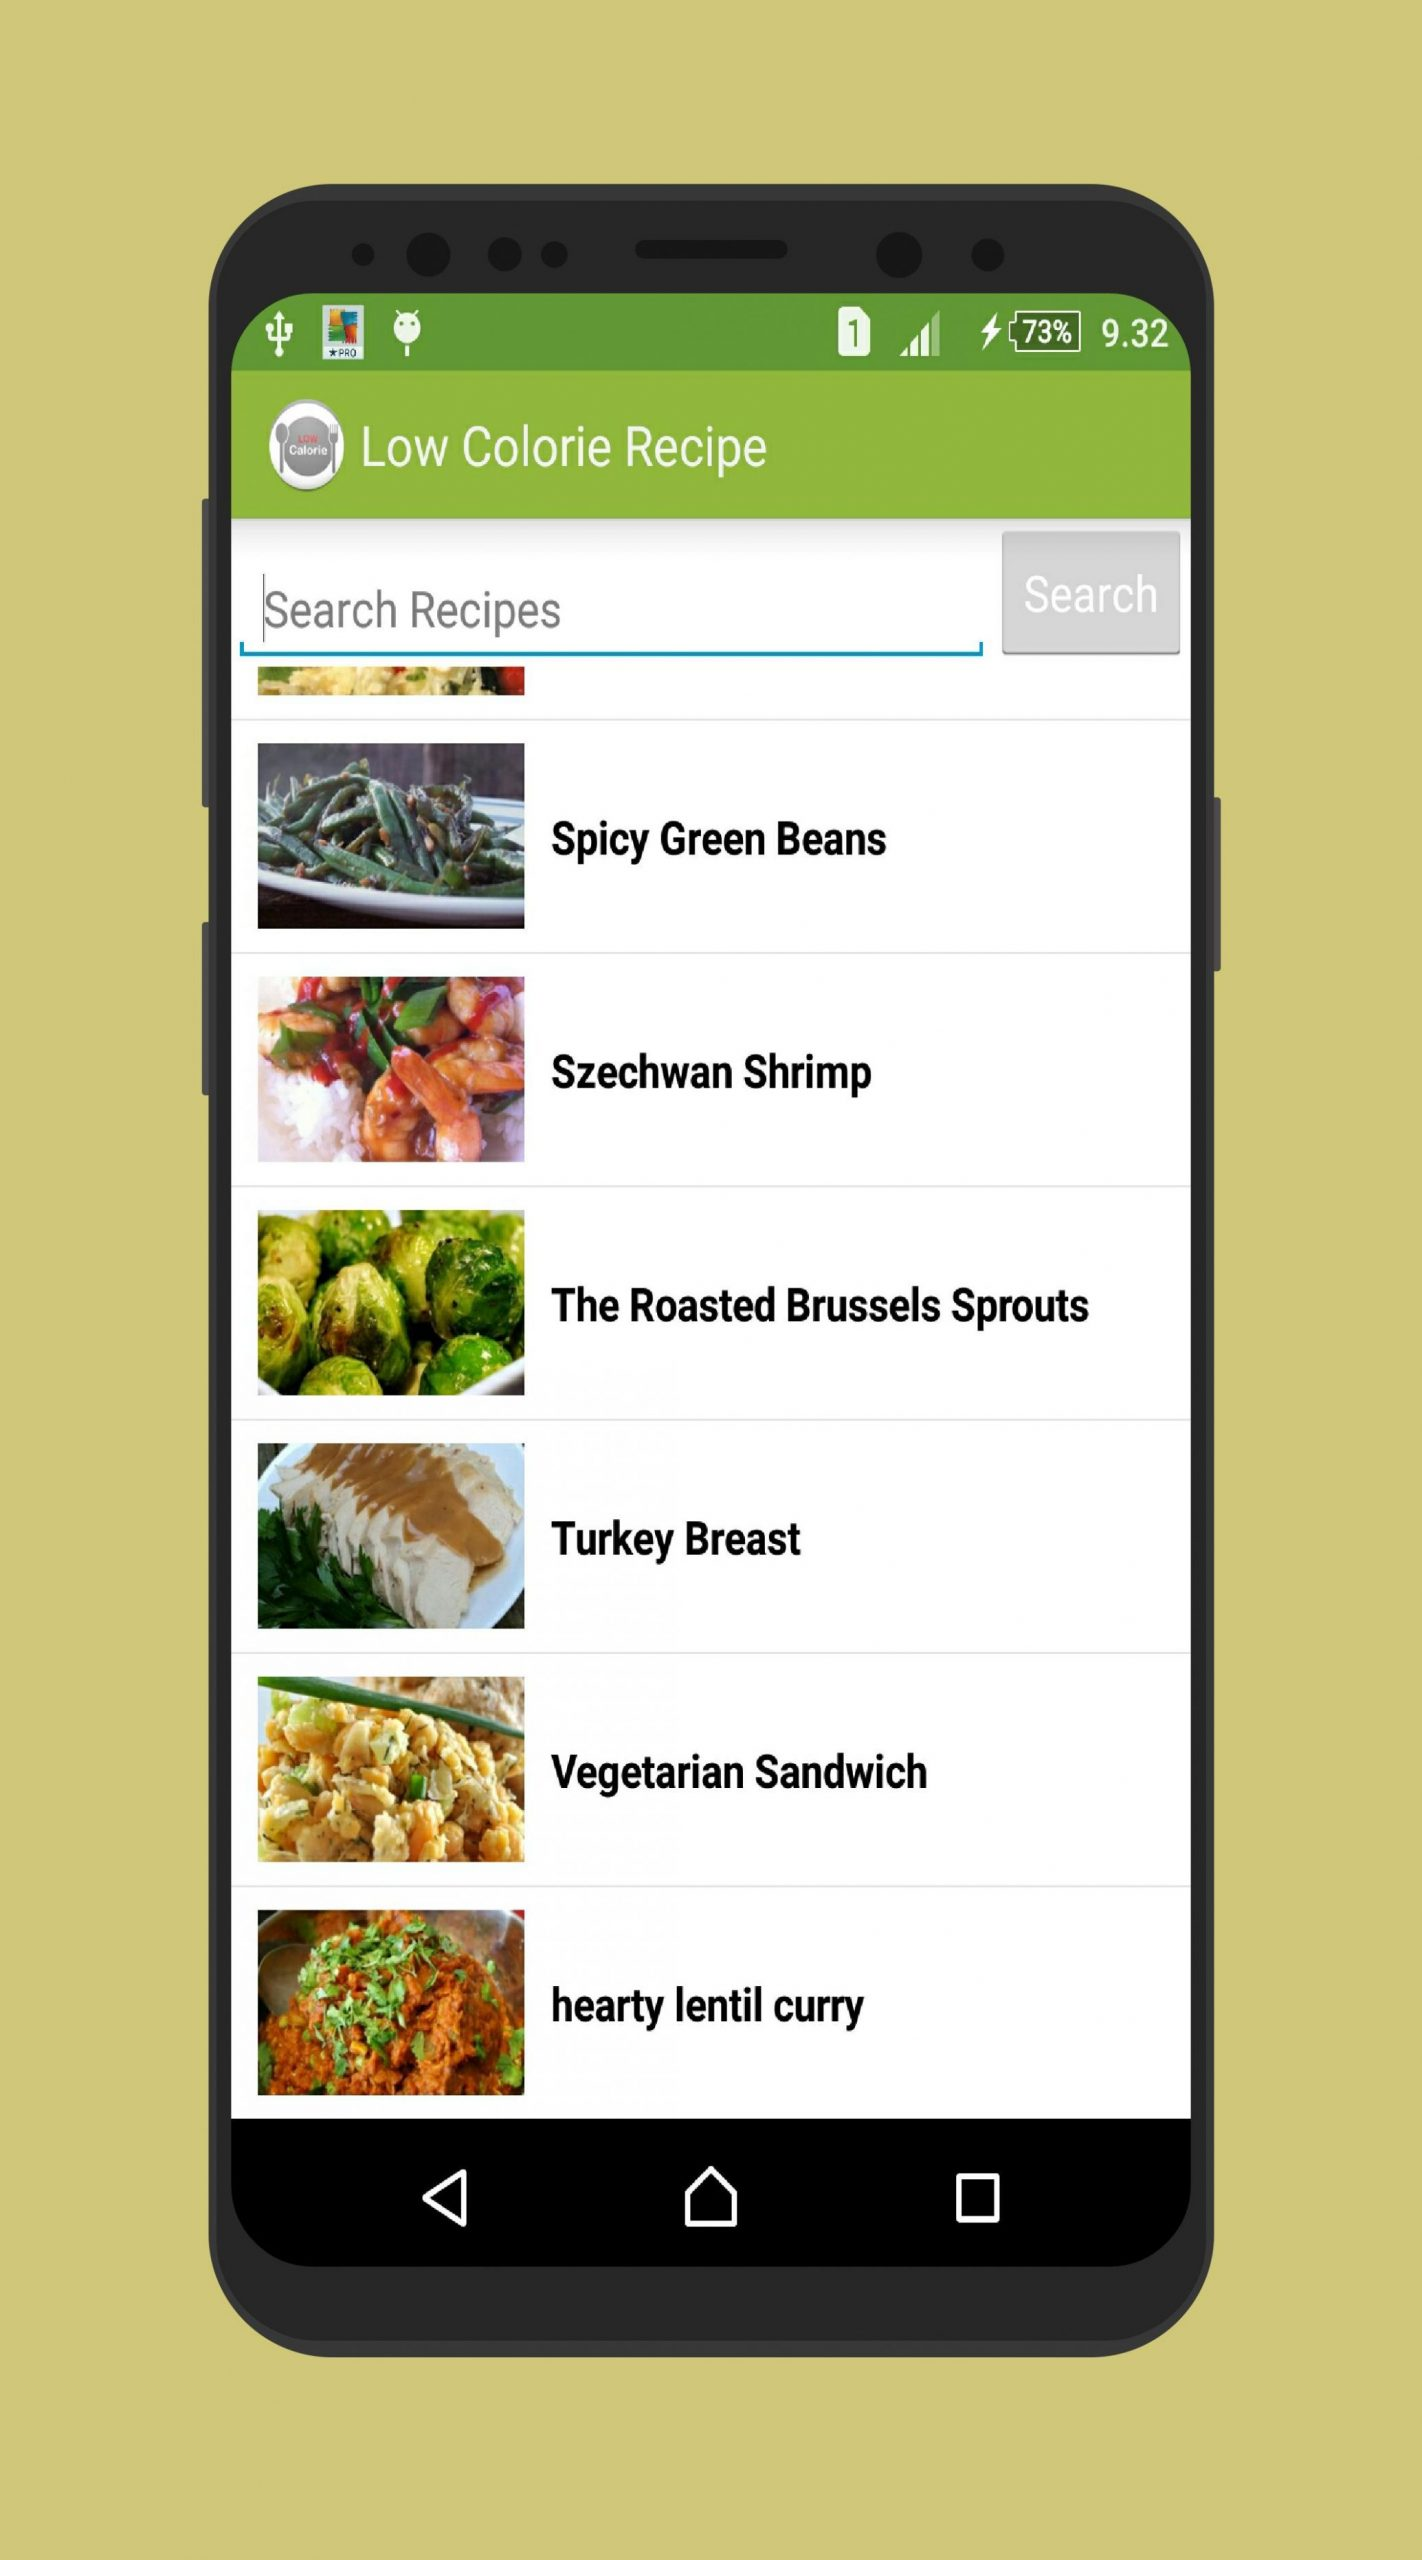 Low Calorie Easy Recipes Offline App for Android - APK Download - Easy Recipes App